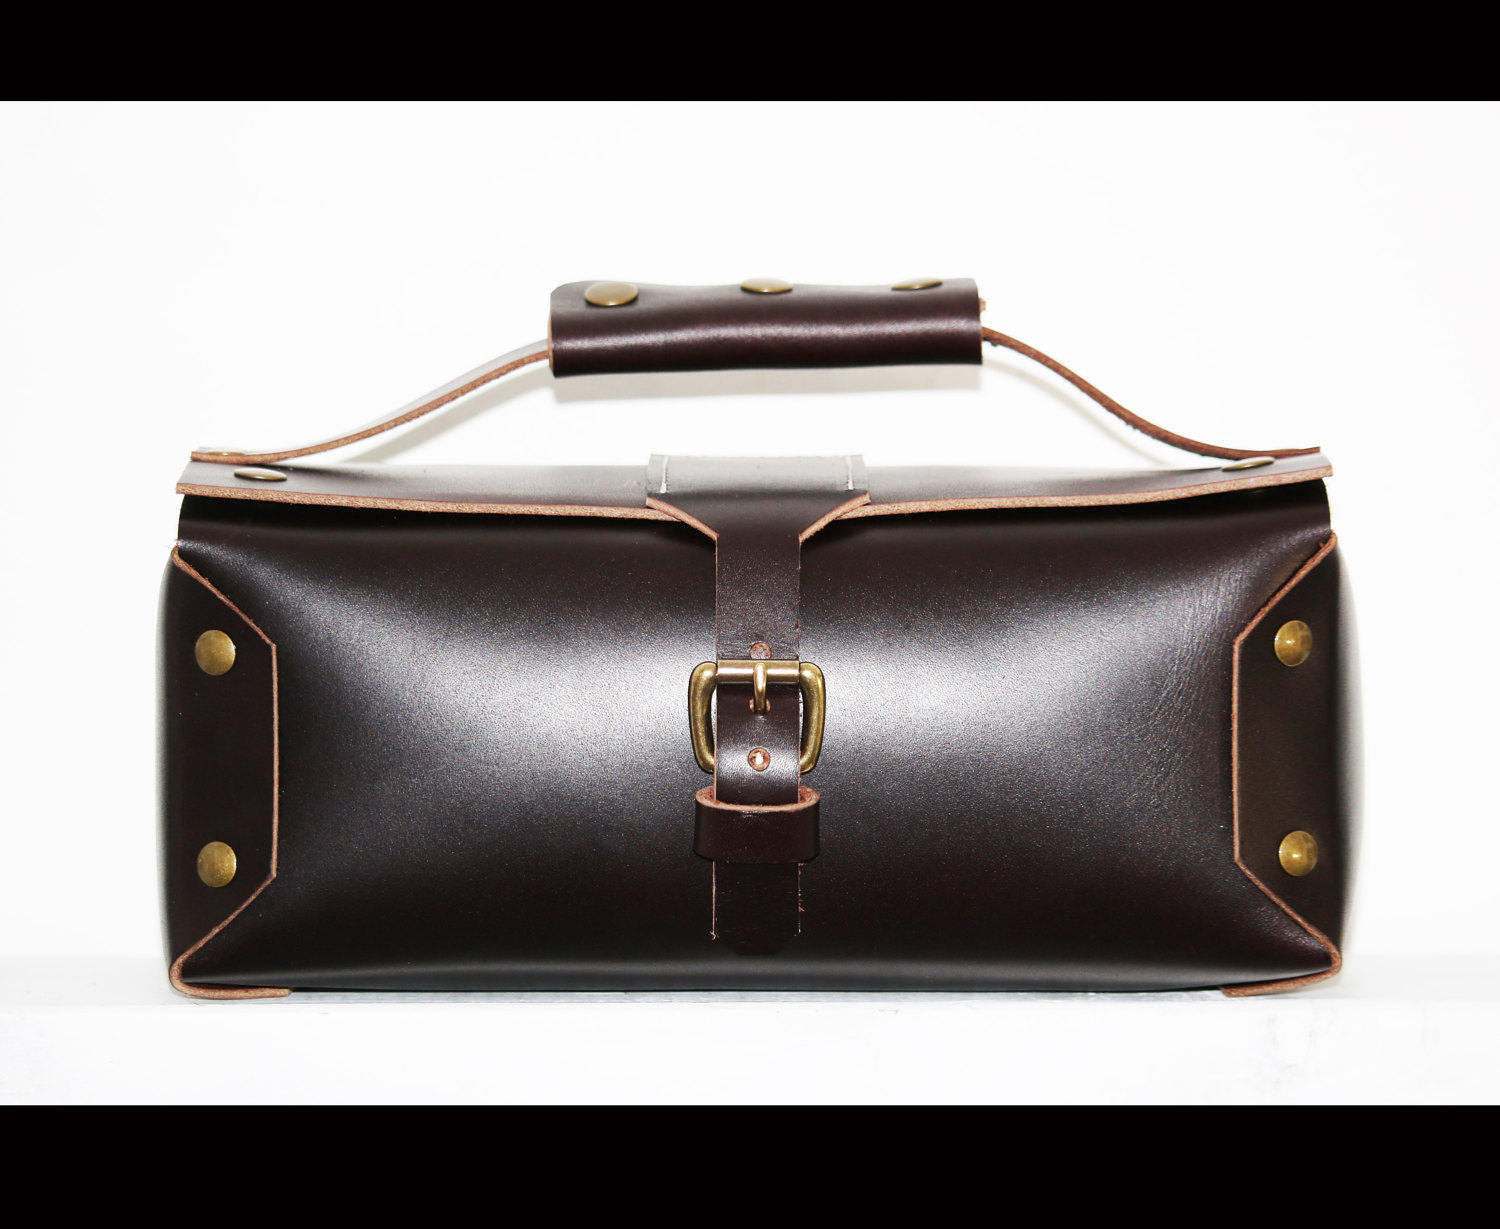 82f09414ac LEATHER TOILETRY BAG DOPP KIT. Product image 1 ...